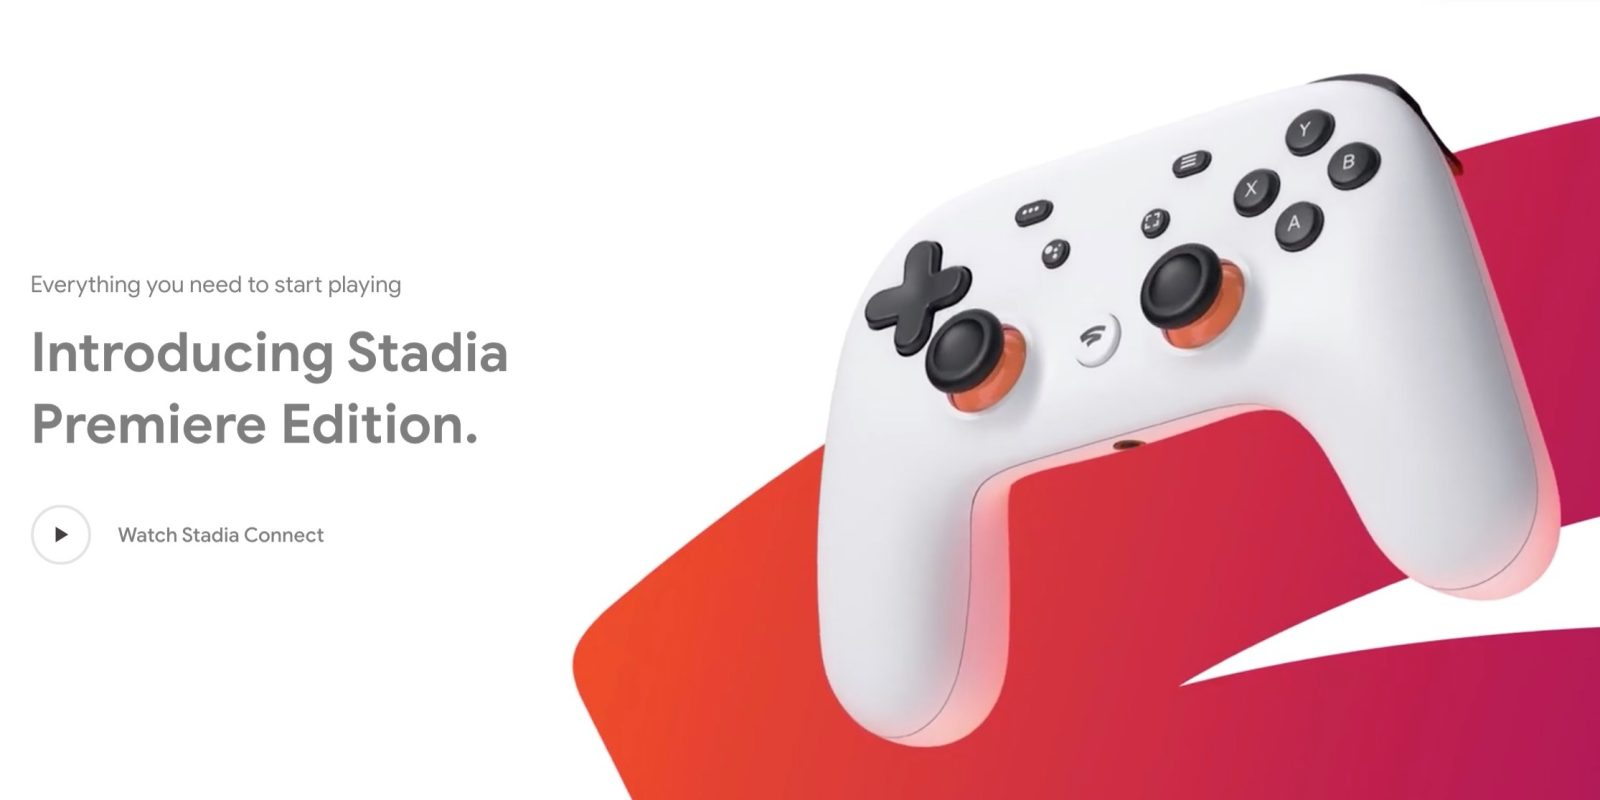 Google sells out of Stadia Founder's Edition in all 14 launch countries